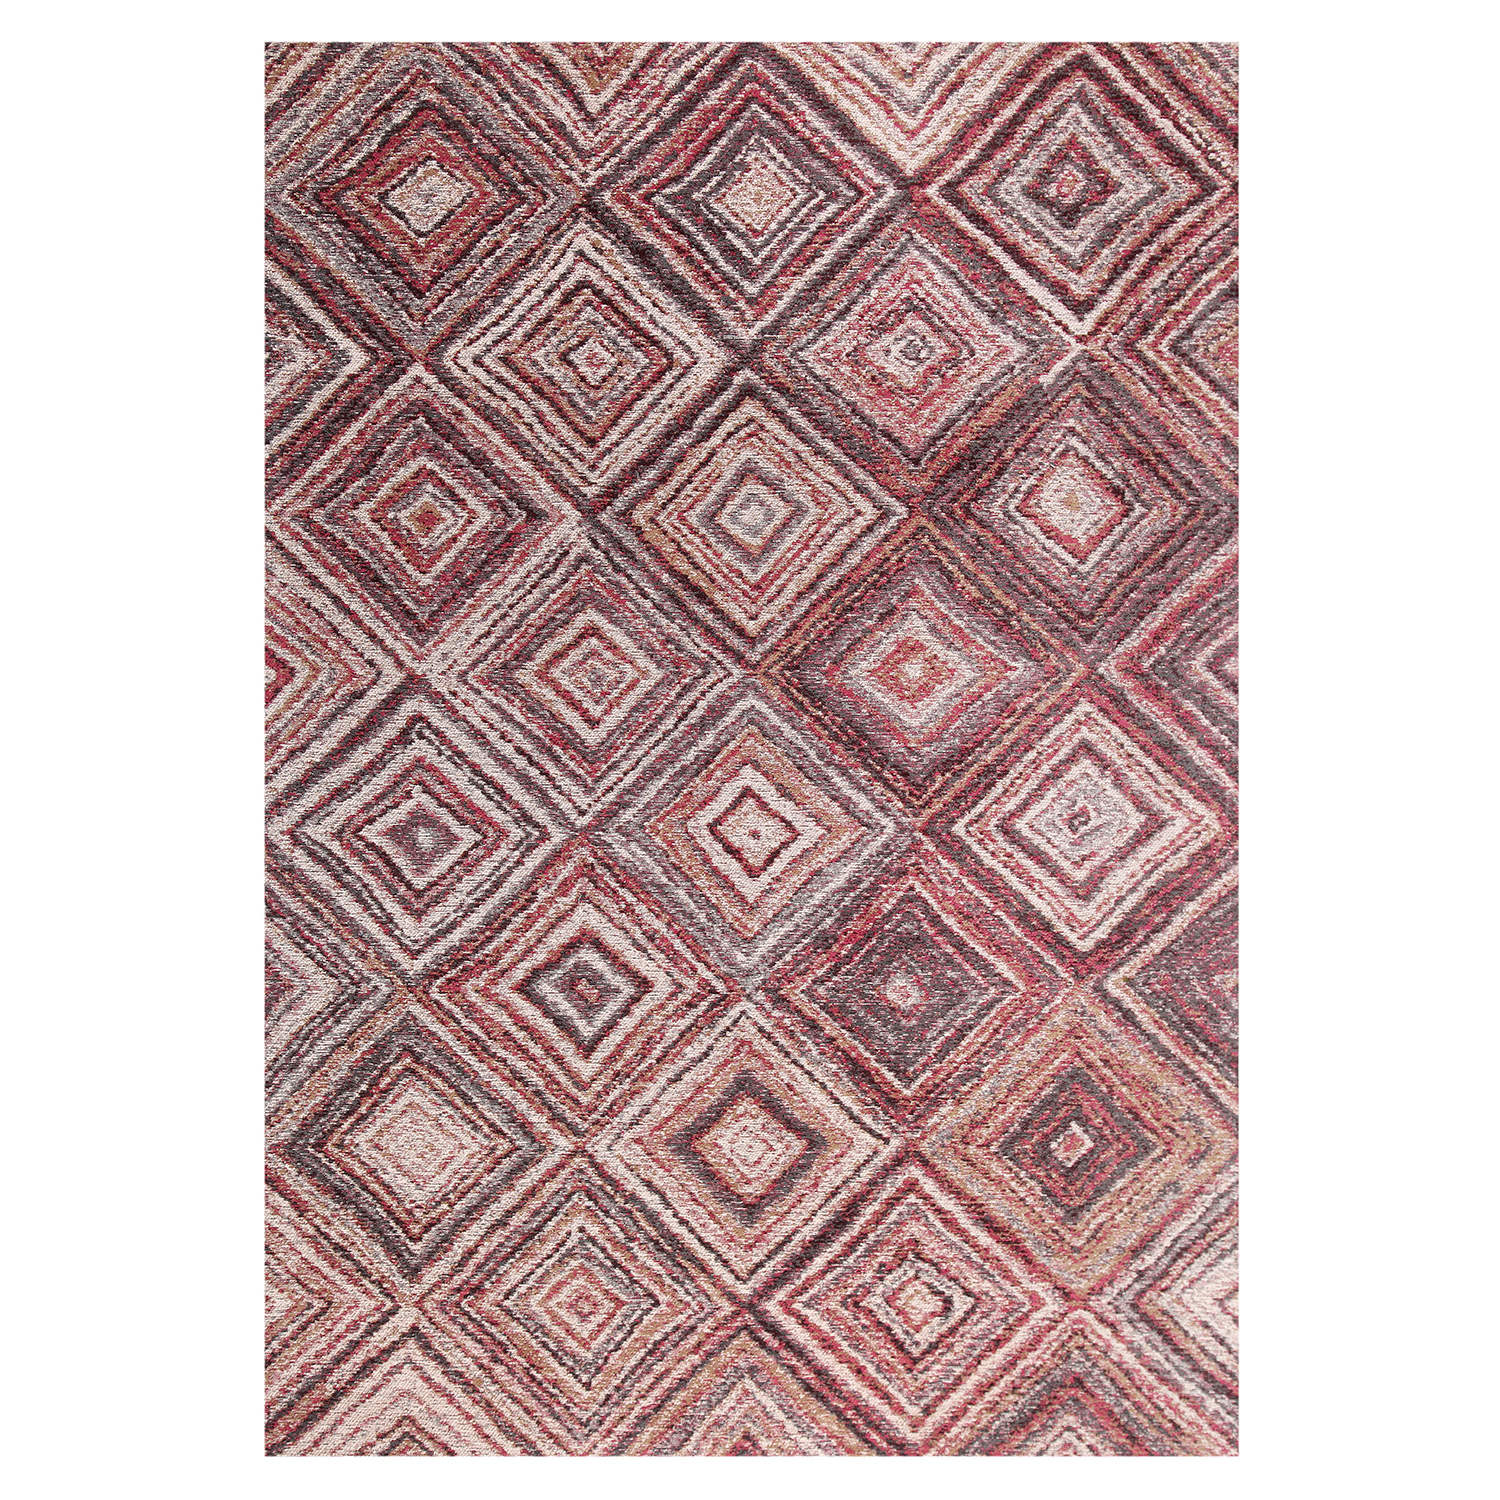 TULLYVALE PINK 160x230cm Rug 3C